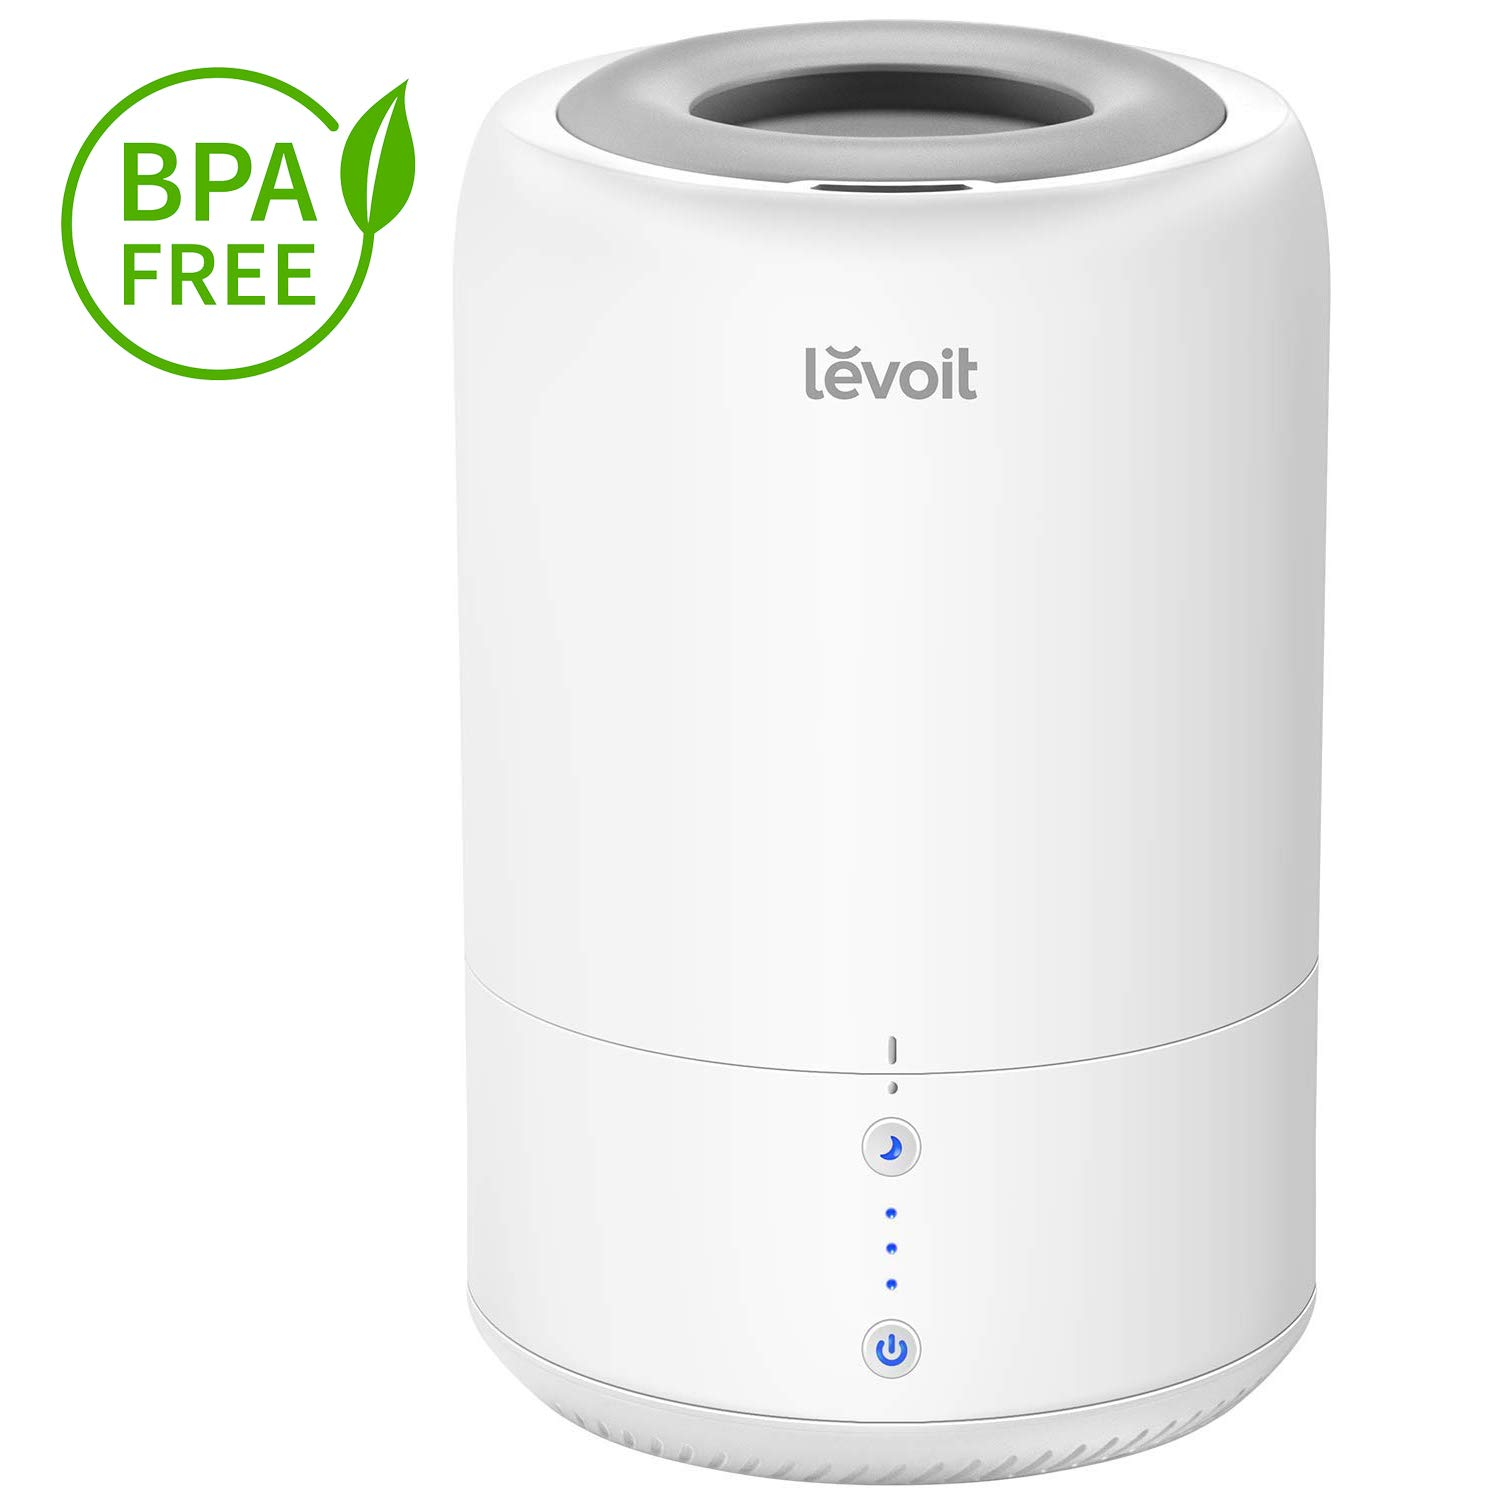 LEVOIT Humidifiers for Bedroom, Top Fill Cool Mist Cold Air Ultrasonic Humidifier Essential Oil Diffuser for Home, Babies Room, Smart Sleep Mode, Long Lasting, Auto Shut Off(1.8L/0.48Gal) by LEVOIT